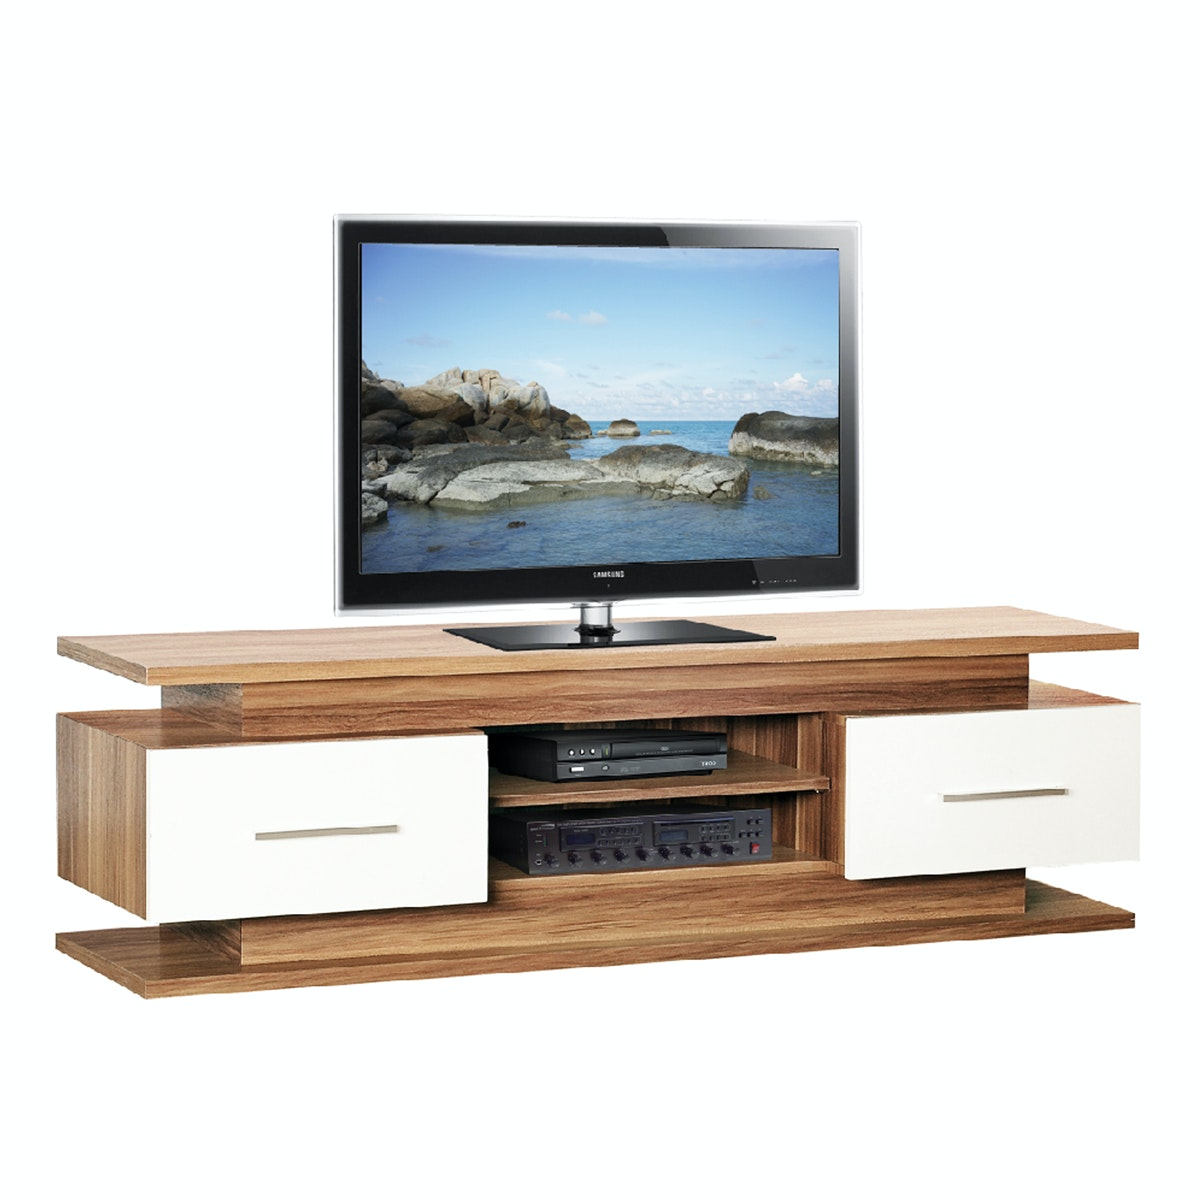 Felini Furniture Rak TV 15 Giovani AVG 15